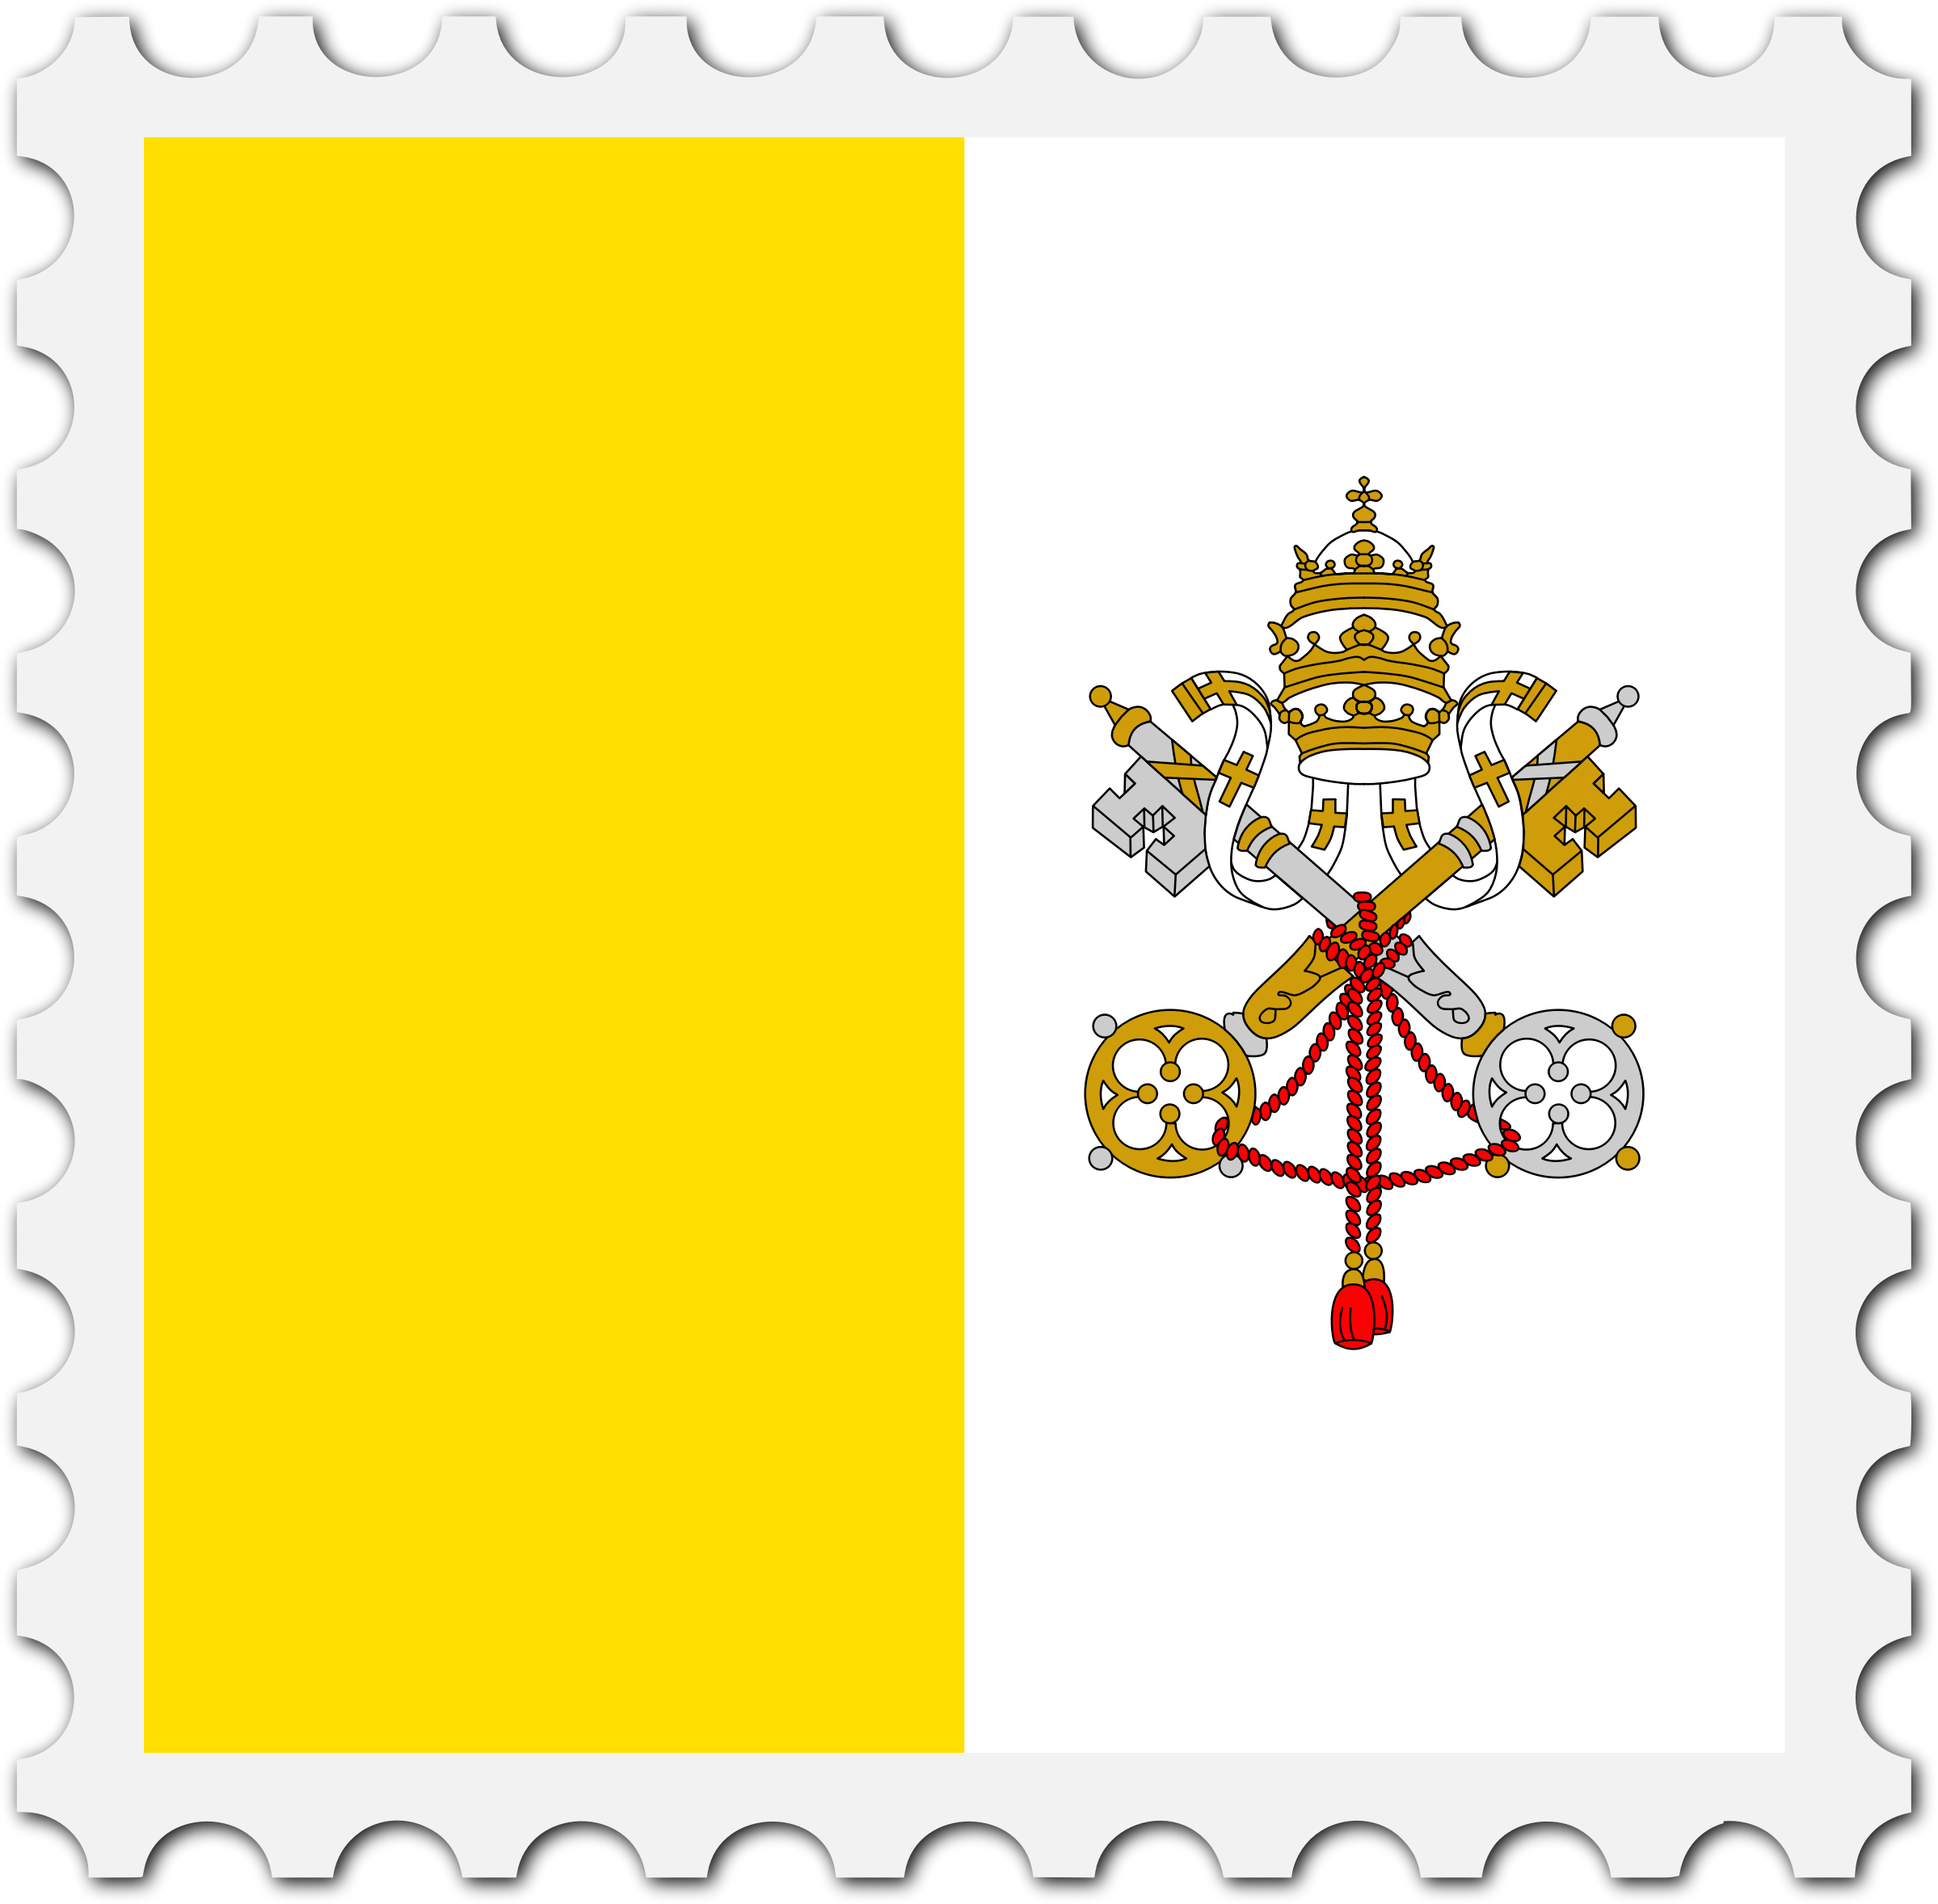 Vatican City flag stamp by Firkin